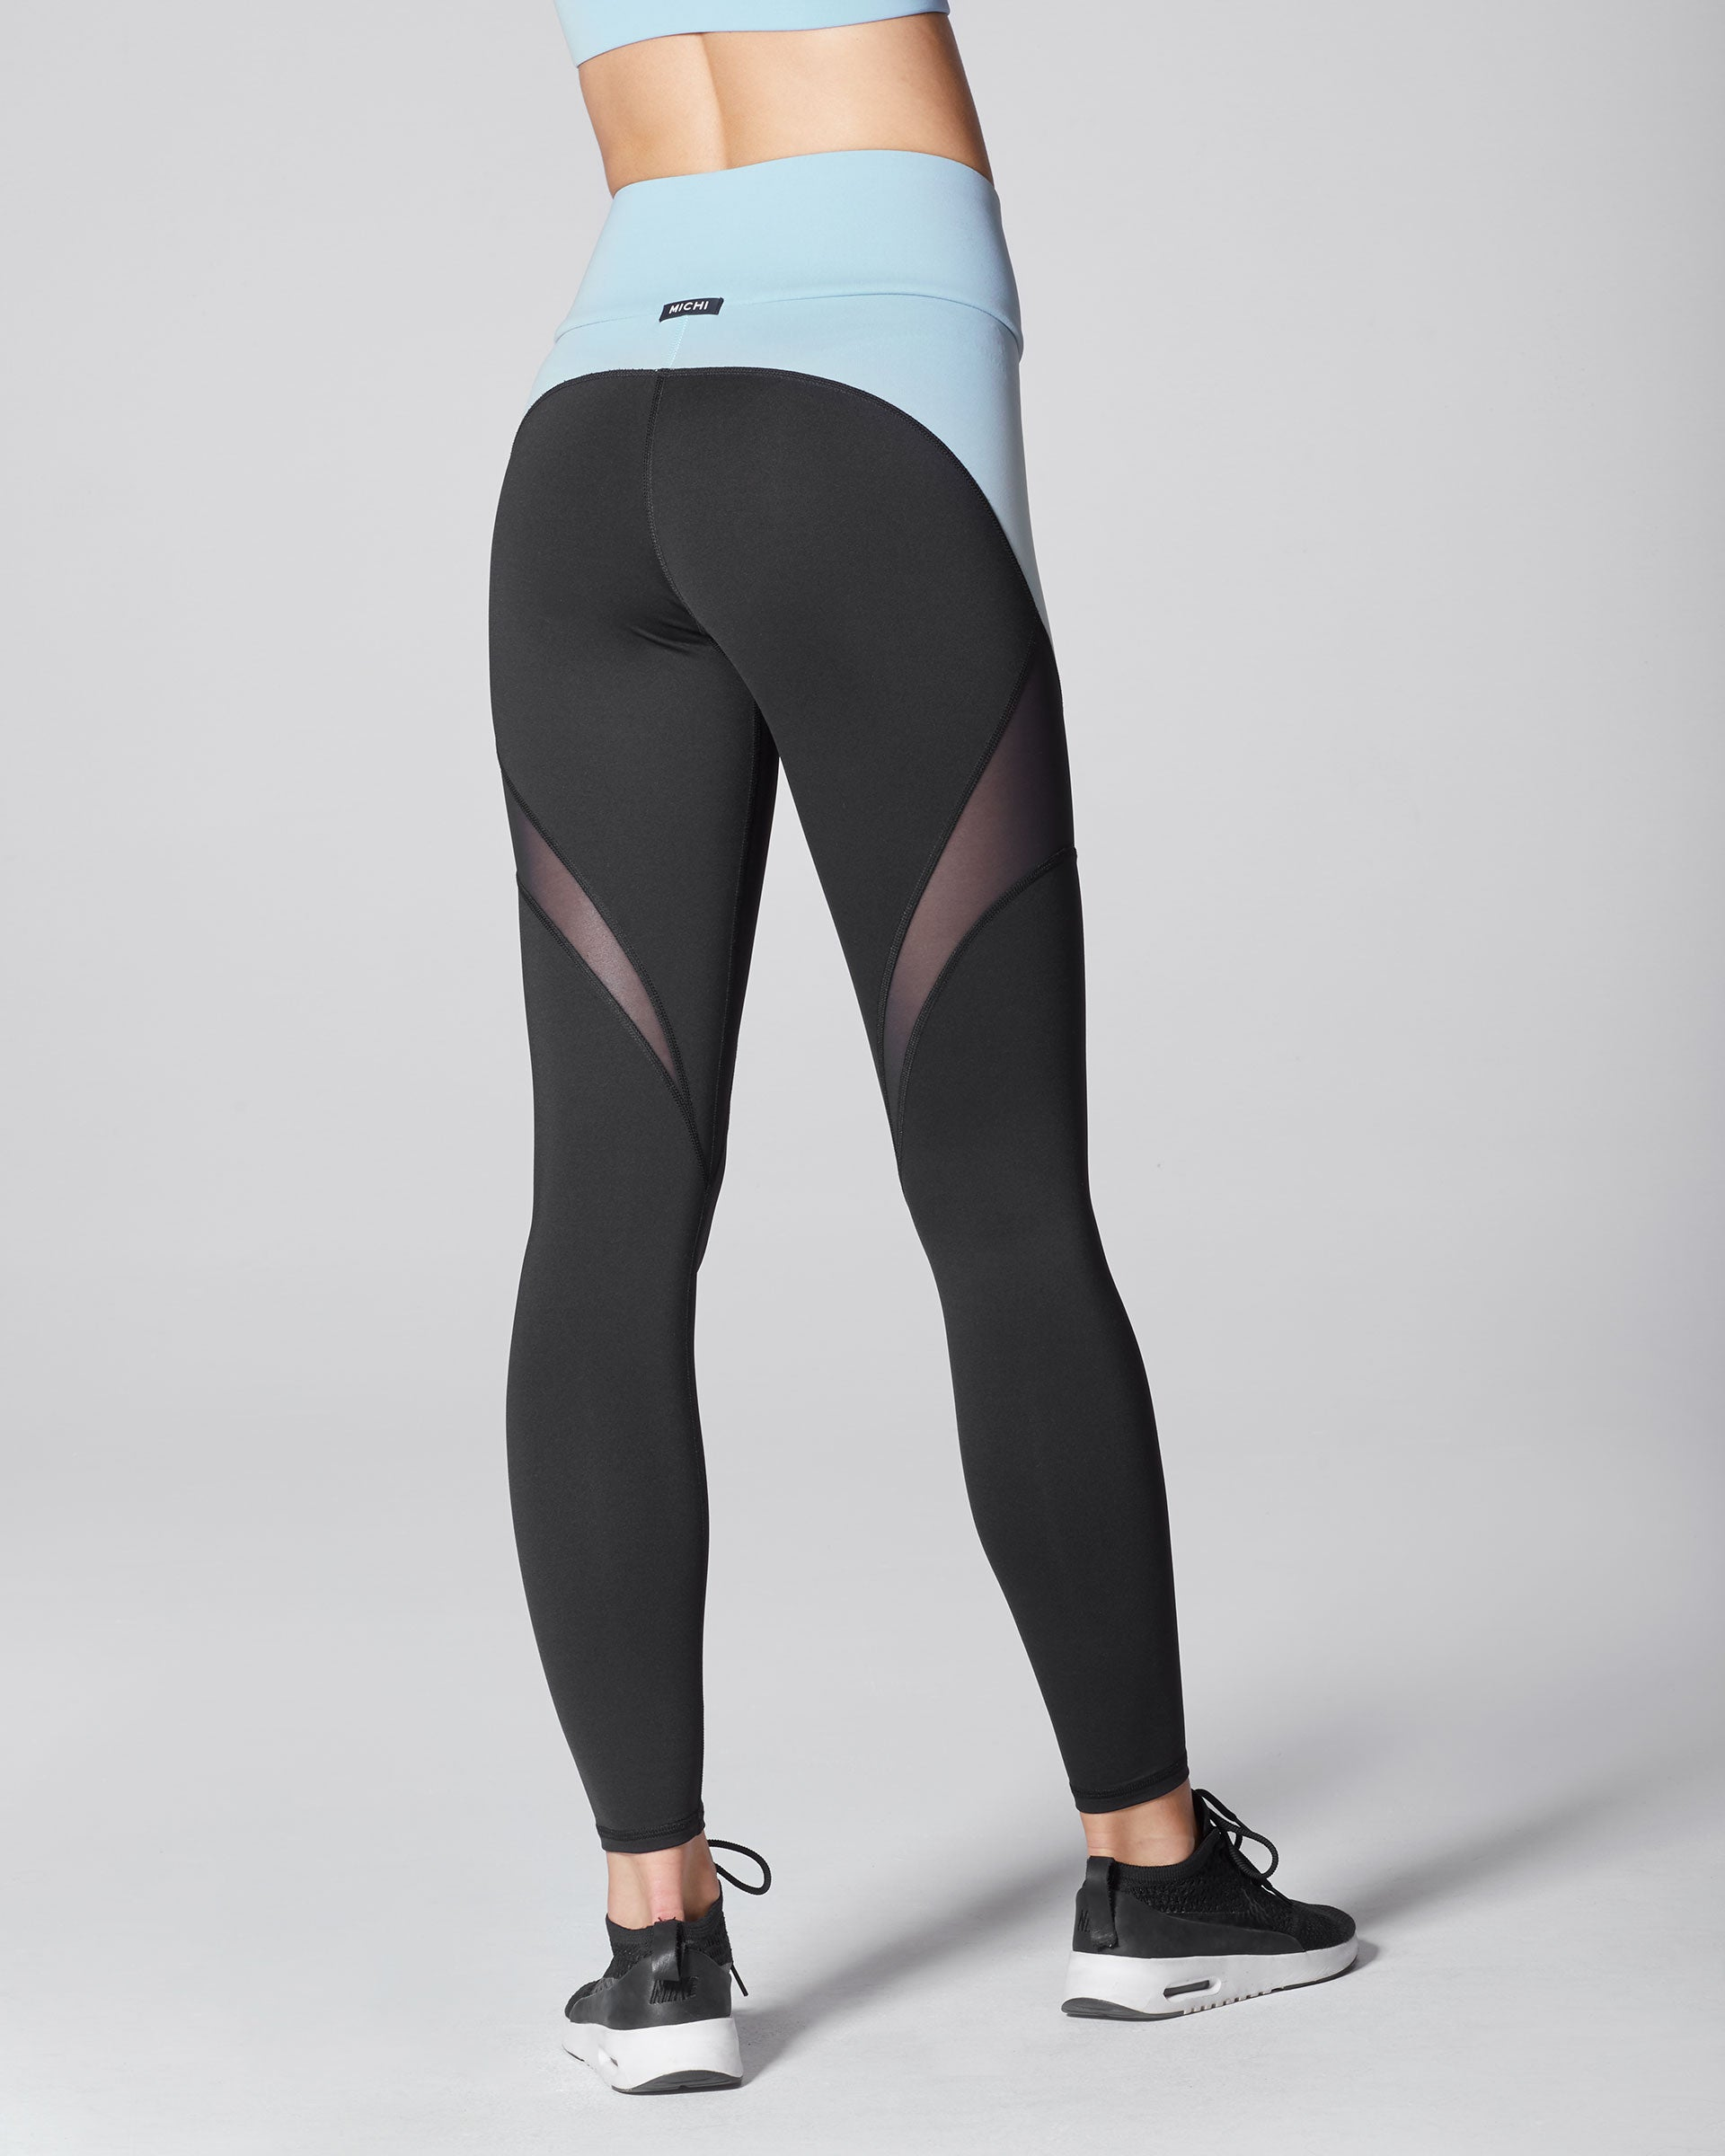 Glow High Waisted Legging - Black/Sky